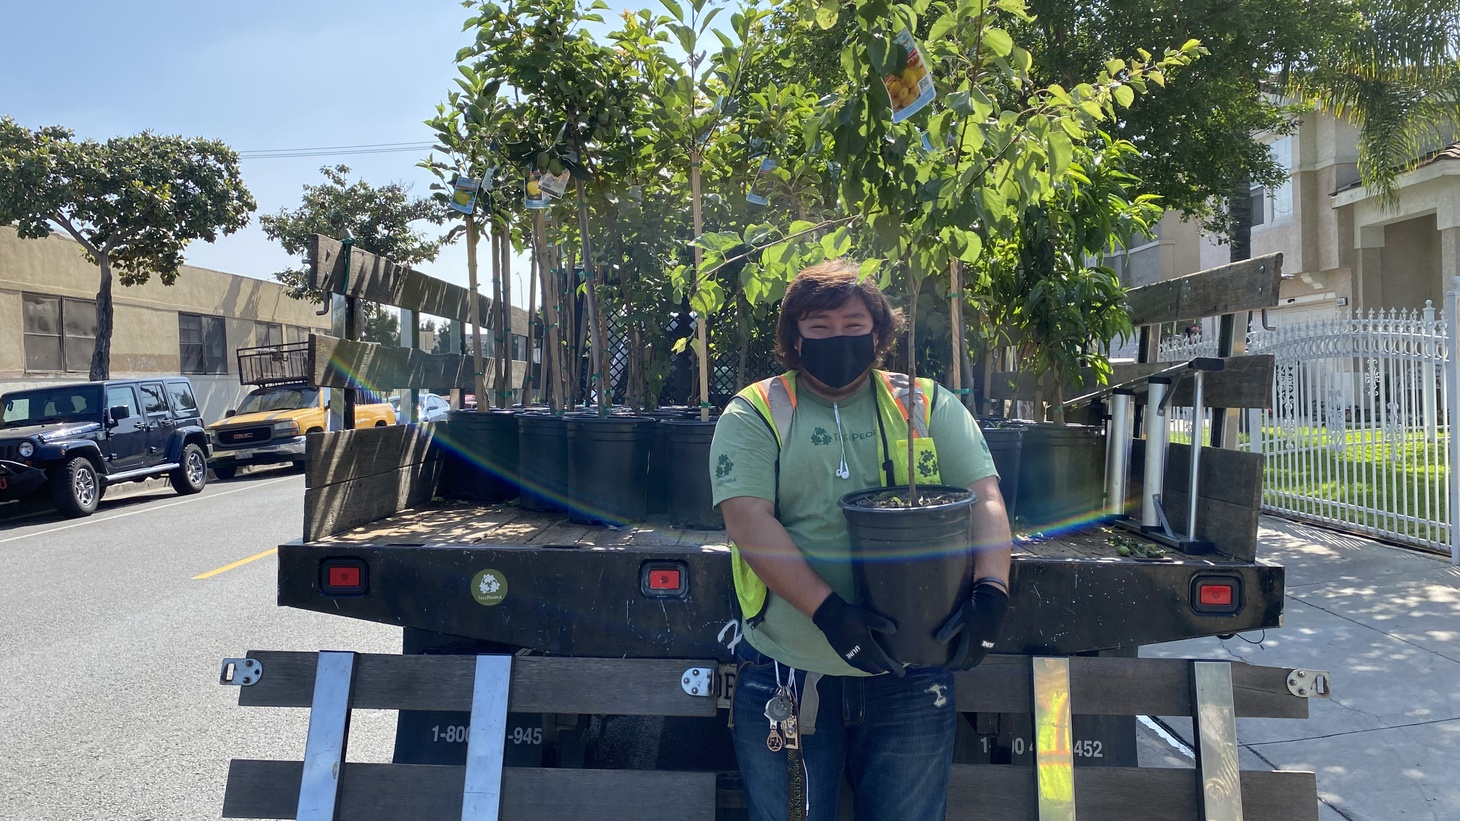 Food insecurity during the coronavirus pandemic is threatening communities across LA. TreePeople organizer Miguel Vargas delivers fruit trees to those in need.